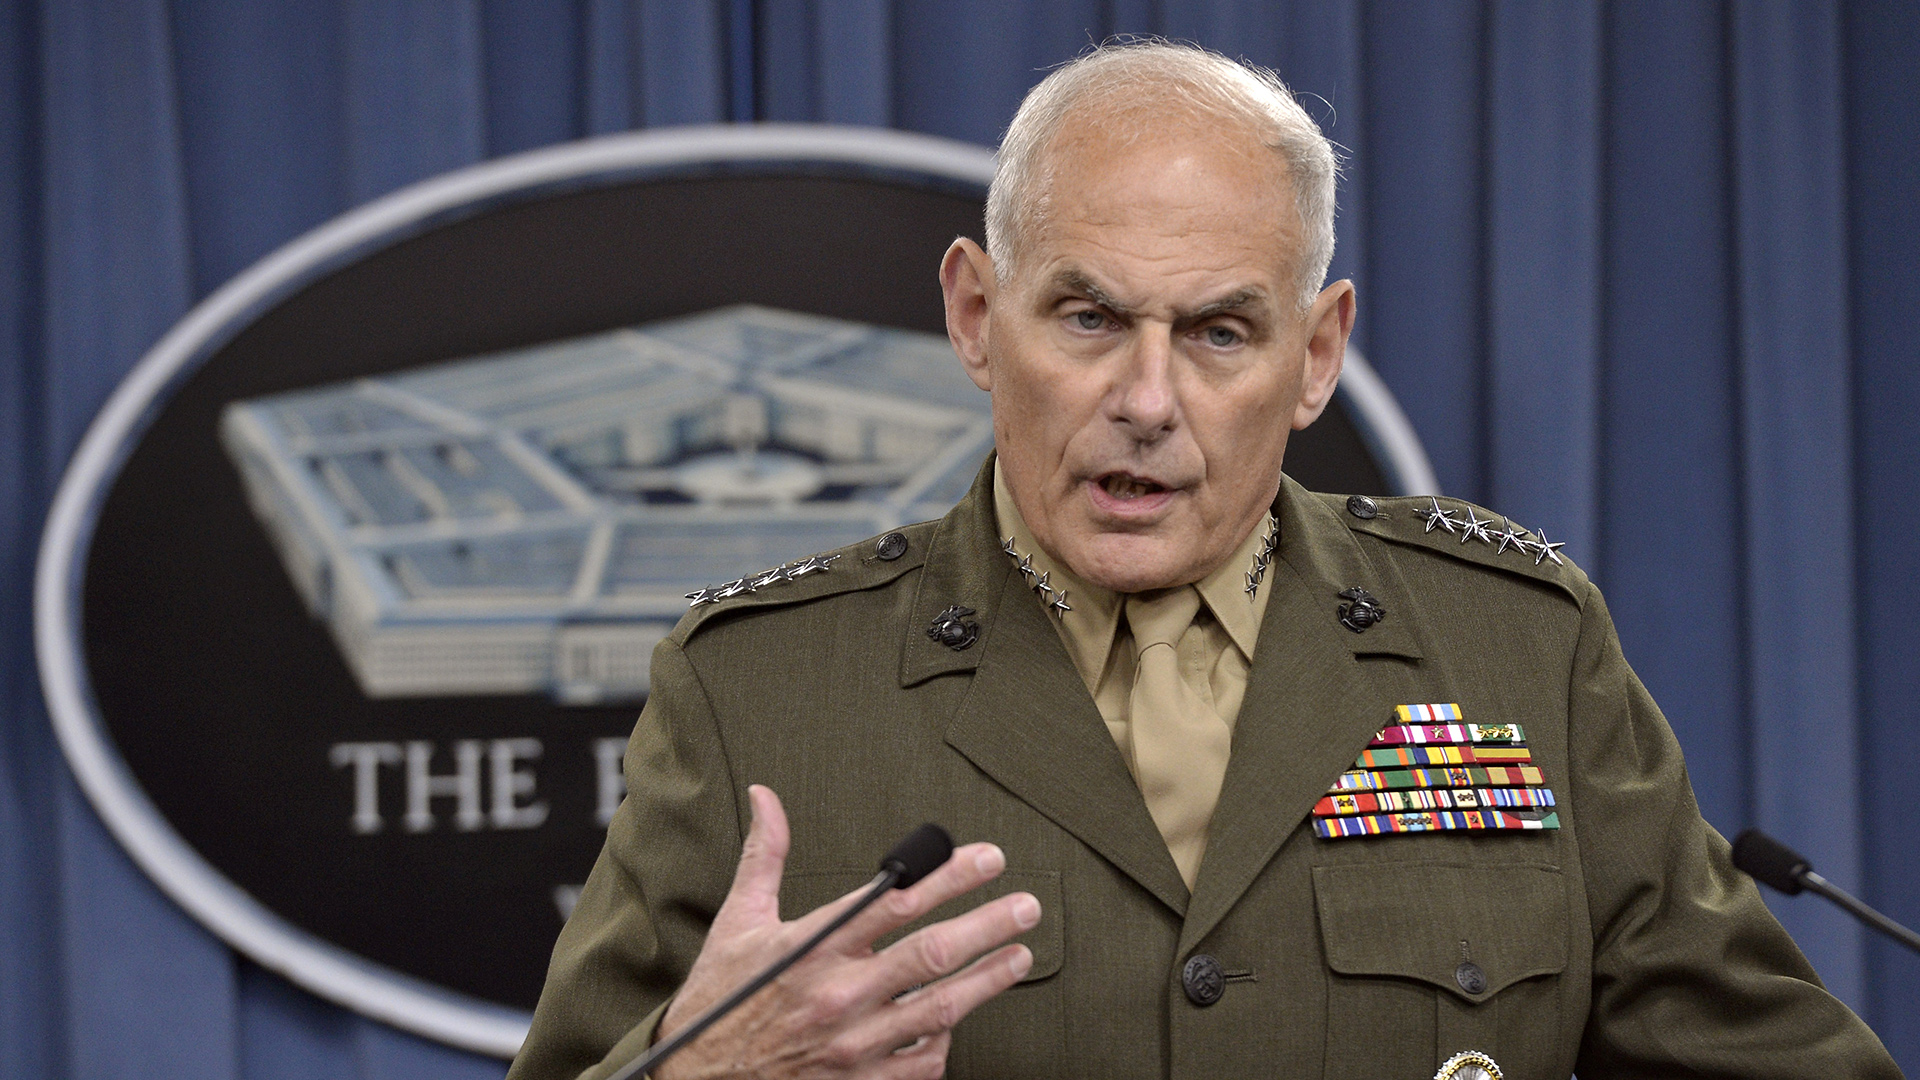 Marine Corps Gen. John F. Kelly in March 2014 discussing developments in his command's efforts to stem the flow of drugs from South and Central America.